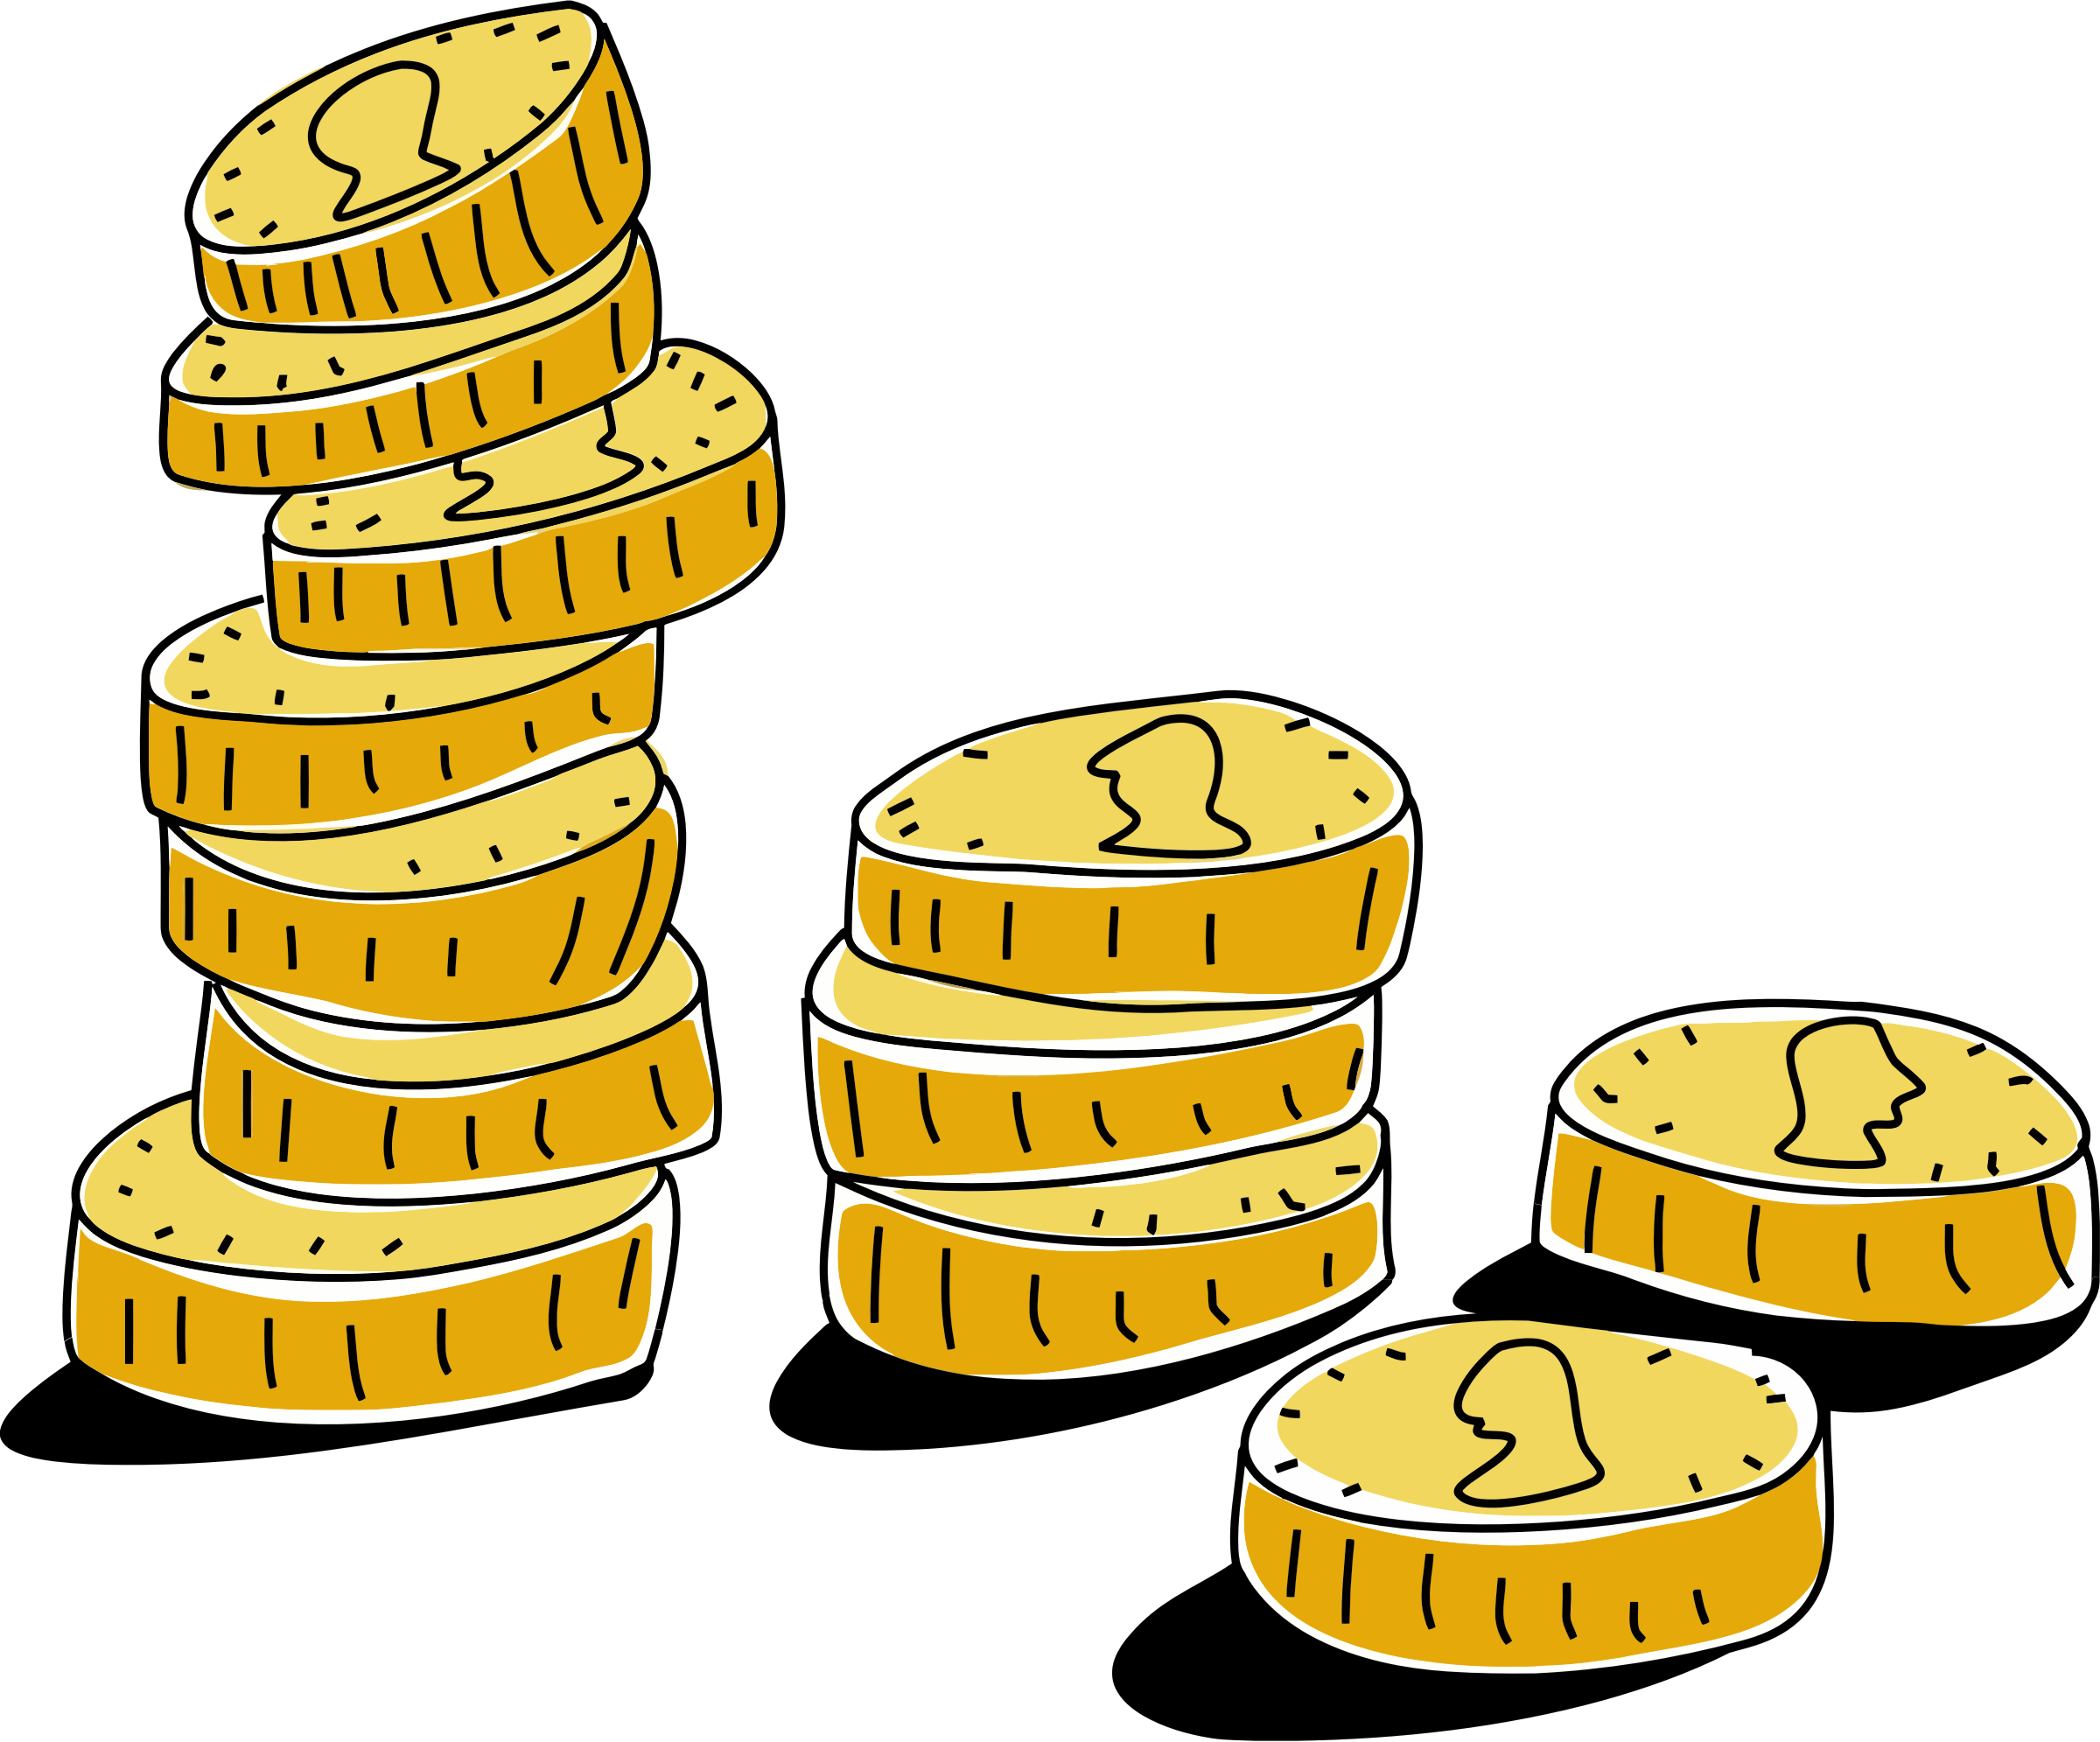 Gold Coins Illustration by GDJ